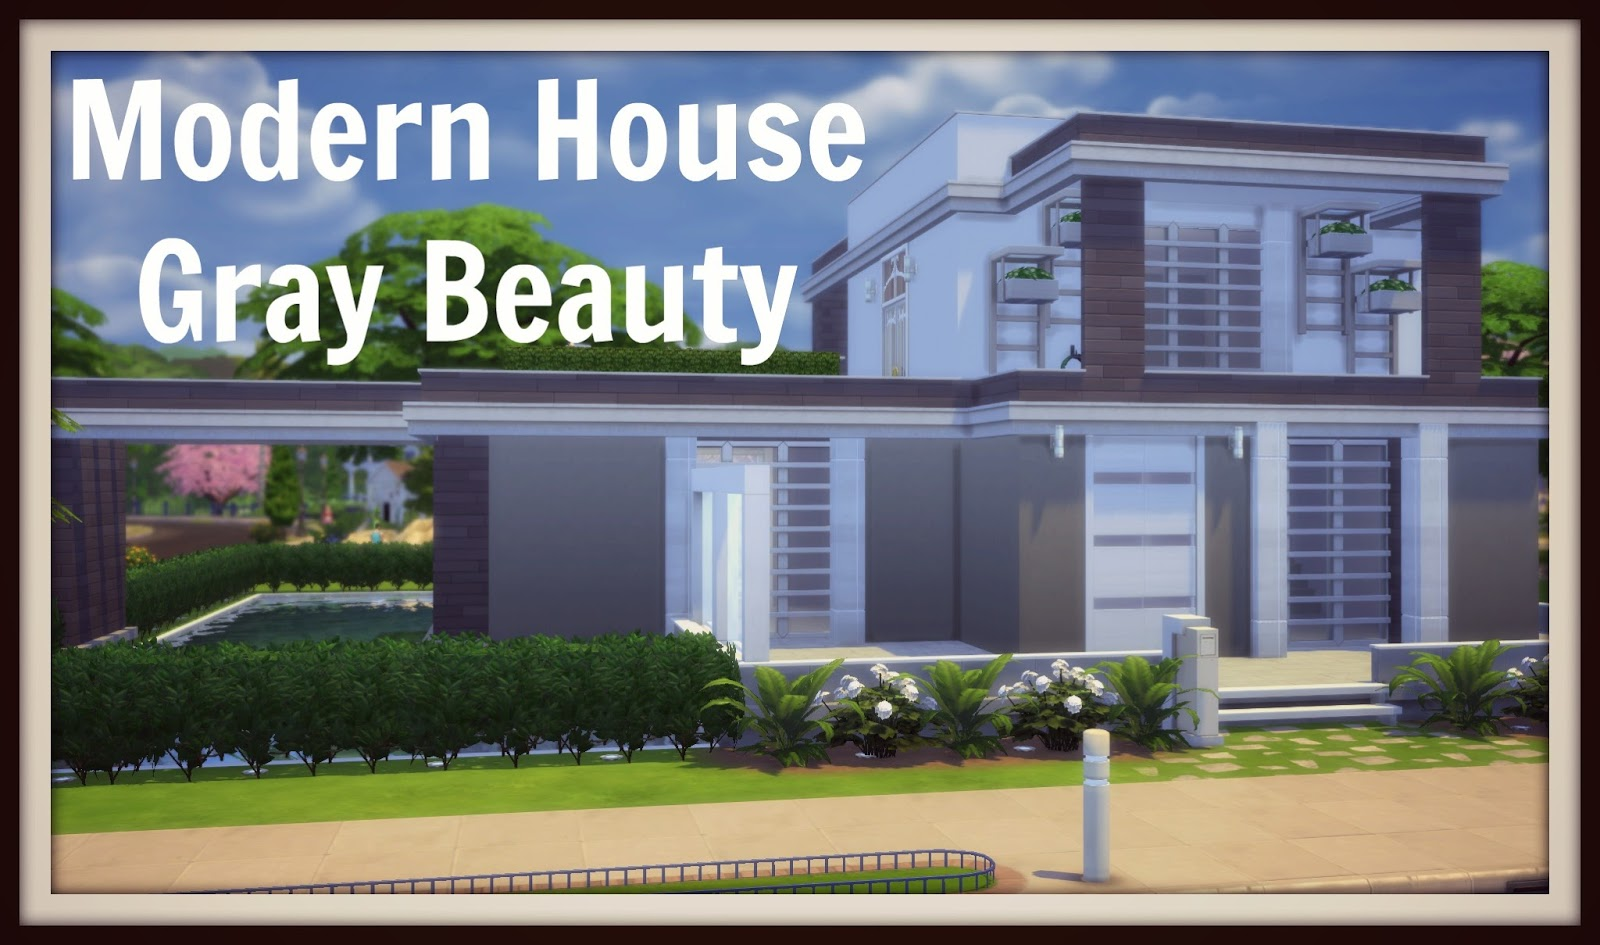 Sims 4 - Modern House (Gray Beauty) - Dinha